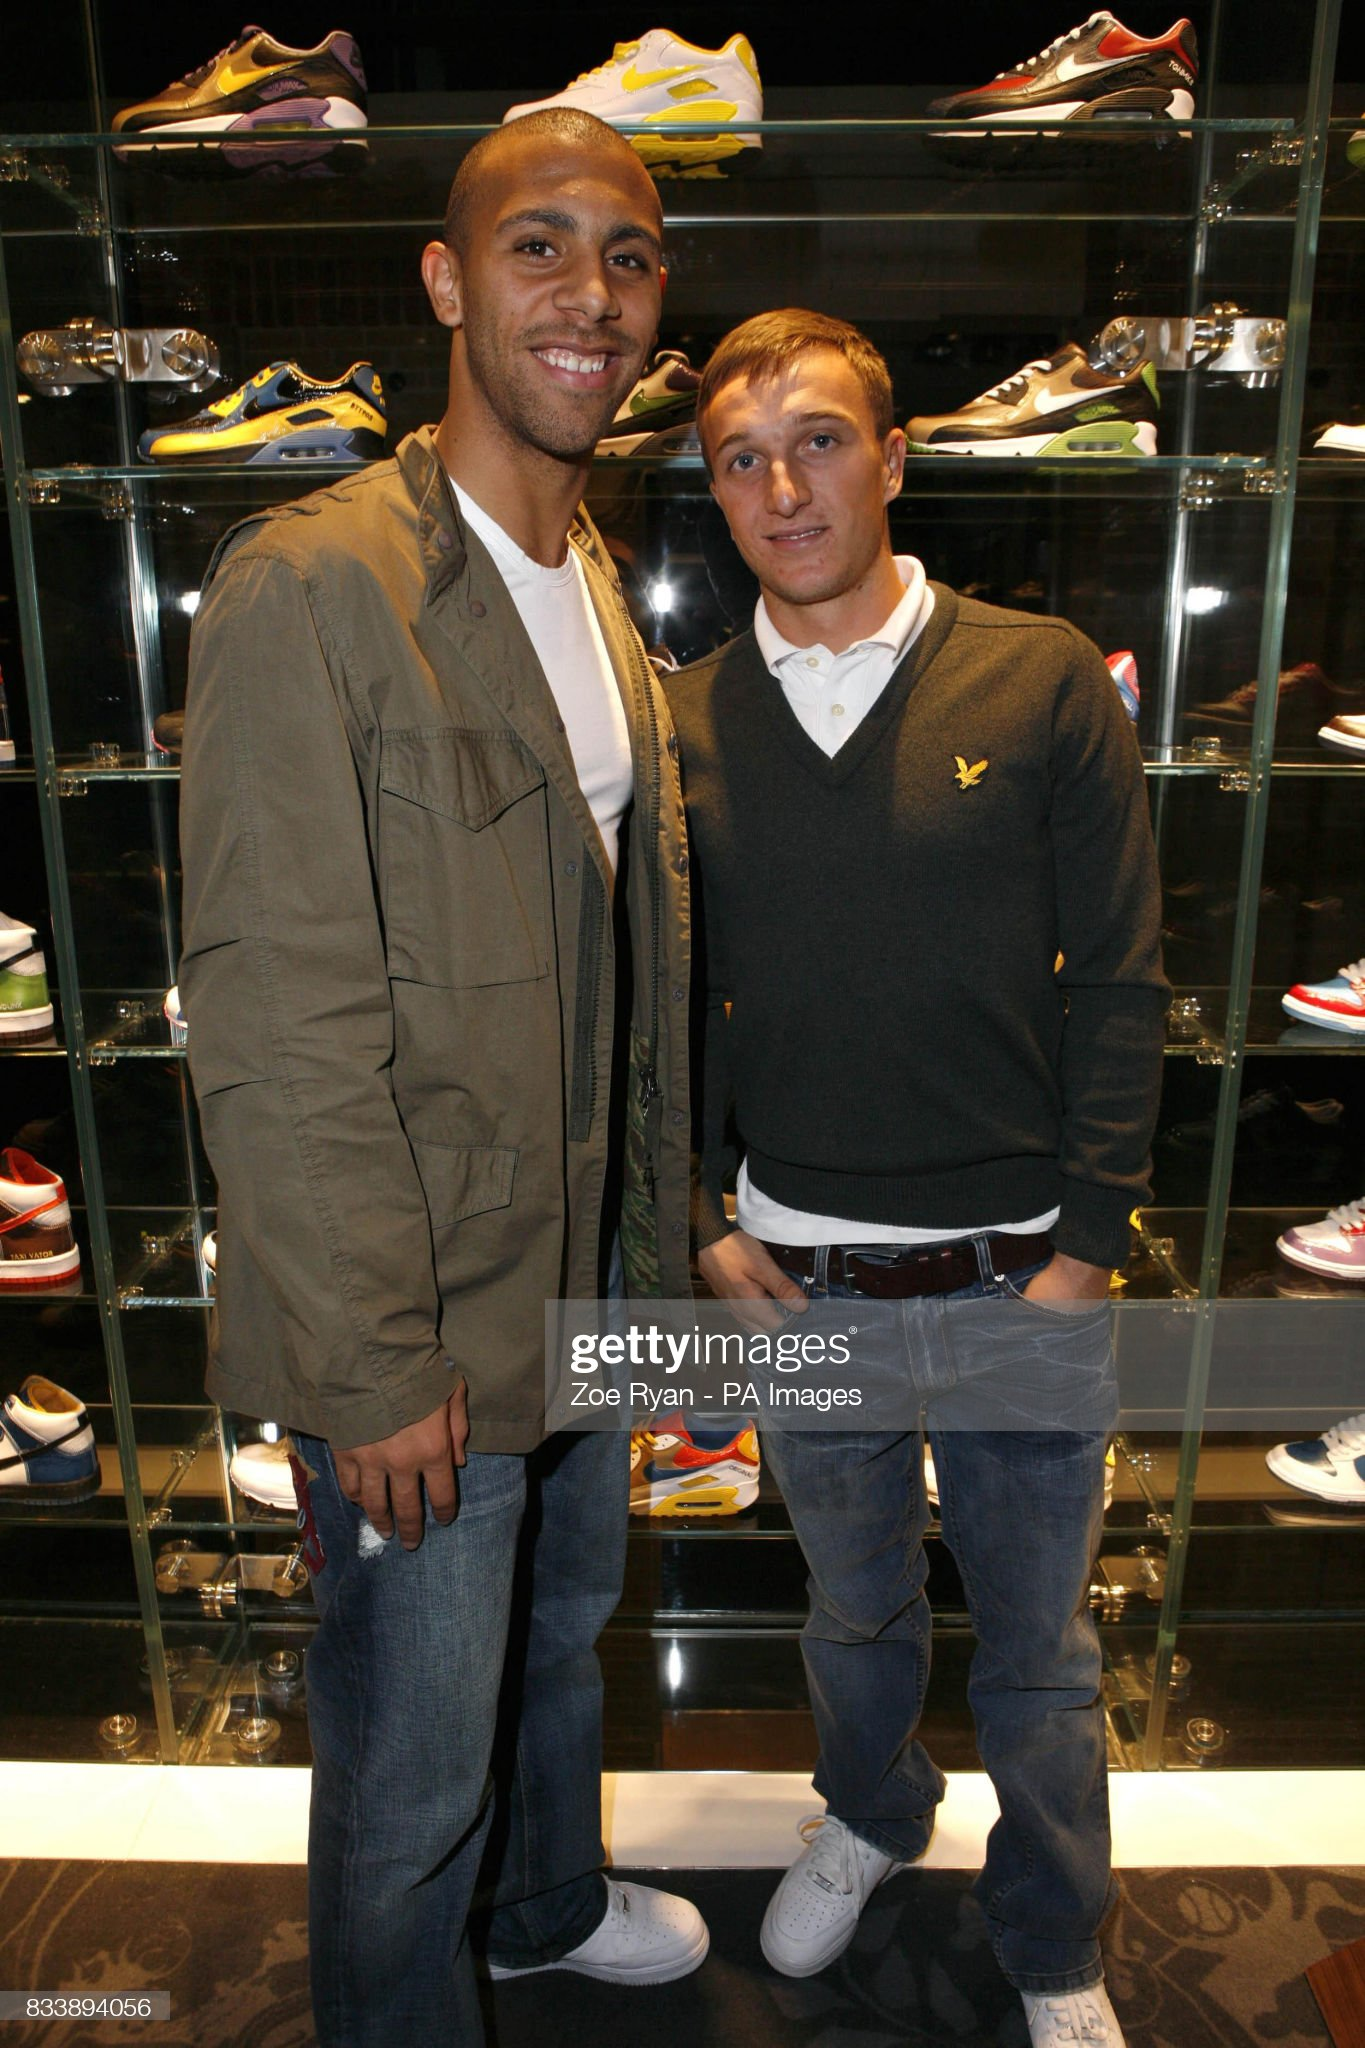 ¿Cuánto mide Mark Noble? - Altura - Real height West-ham-footballers-anton-ferdinand-mark-noble-attend-the-launch-of-picture-id833894056?s=2048x2048